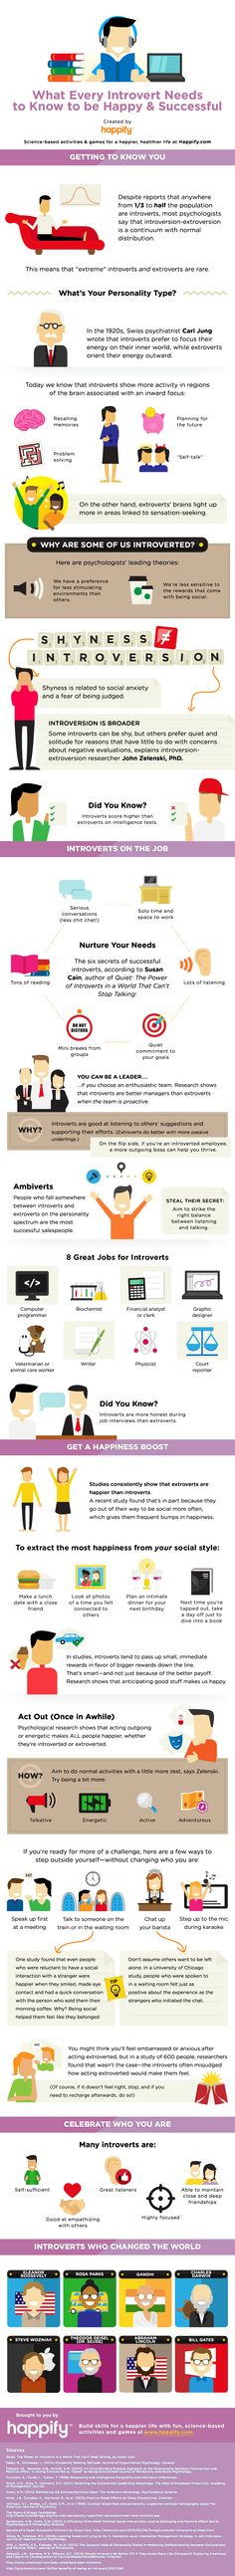 what every introvert needs to know to be happy and successful.